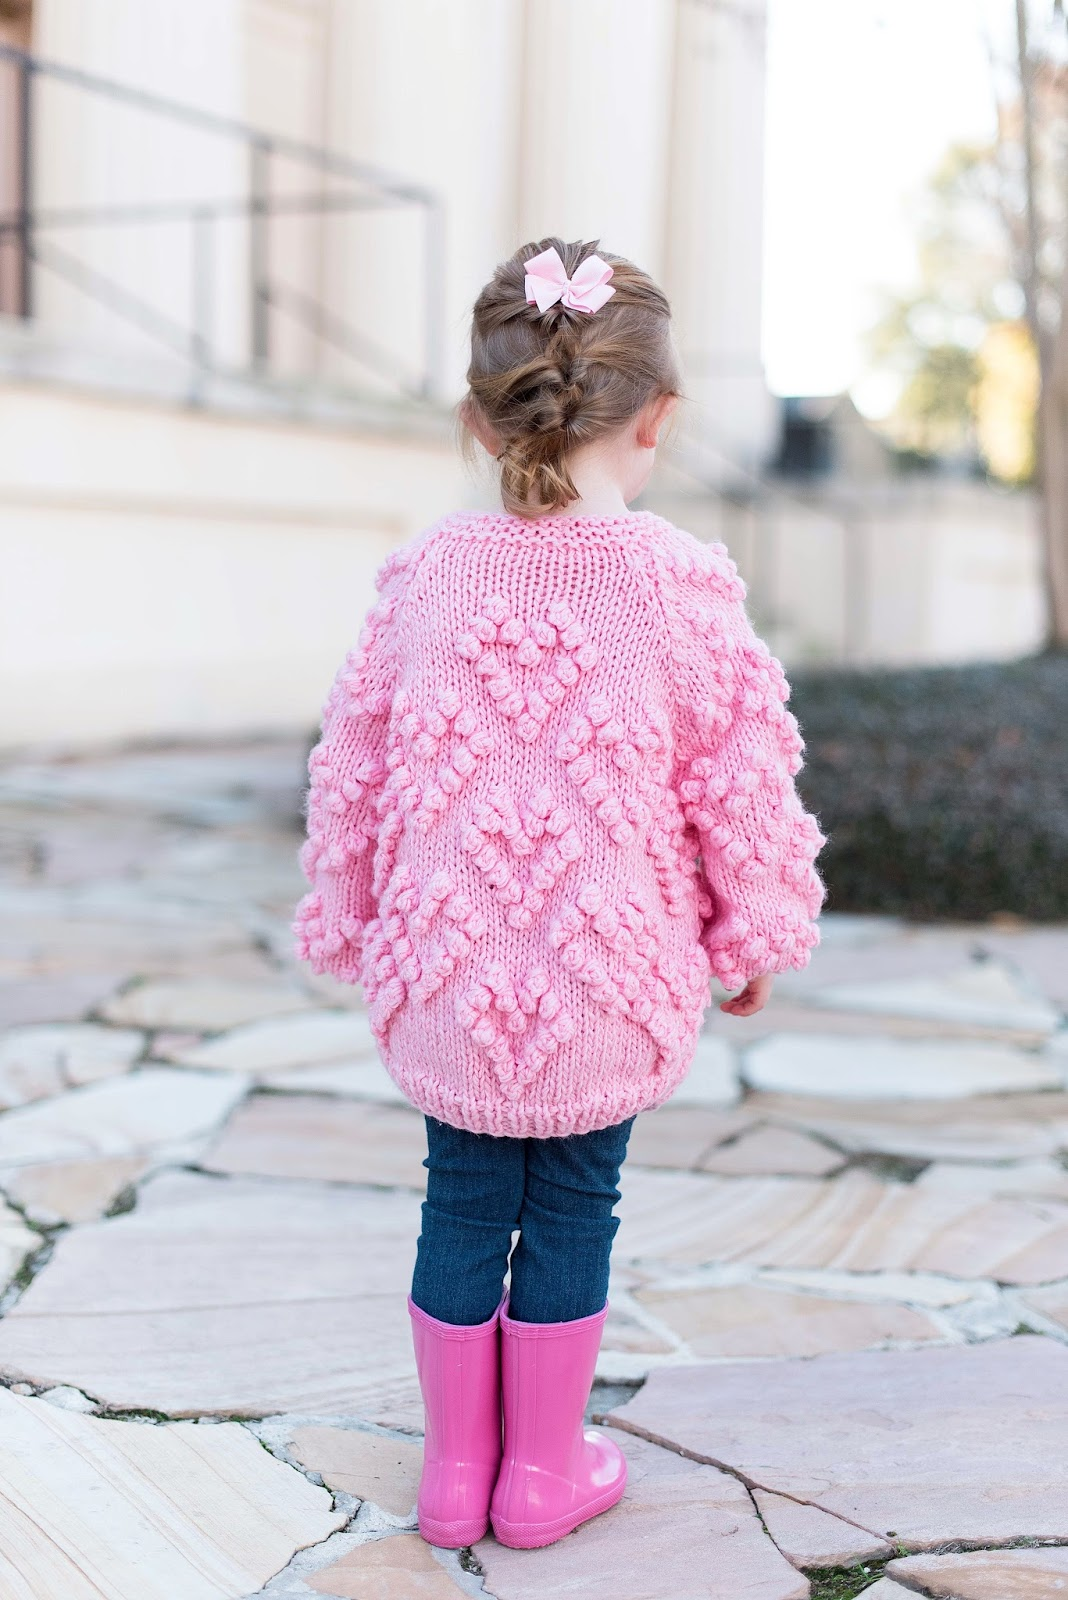 Heart Cardigan for kids - All details can be found on Something Delightful BlogHeart Cardigan for kids + Pink Hunter Boots - All details can be found on Something Delightful Blog